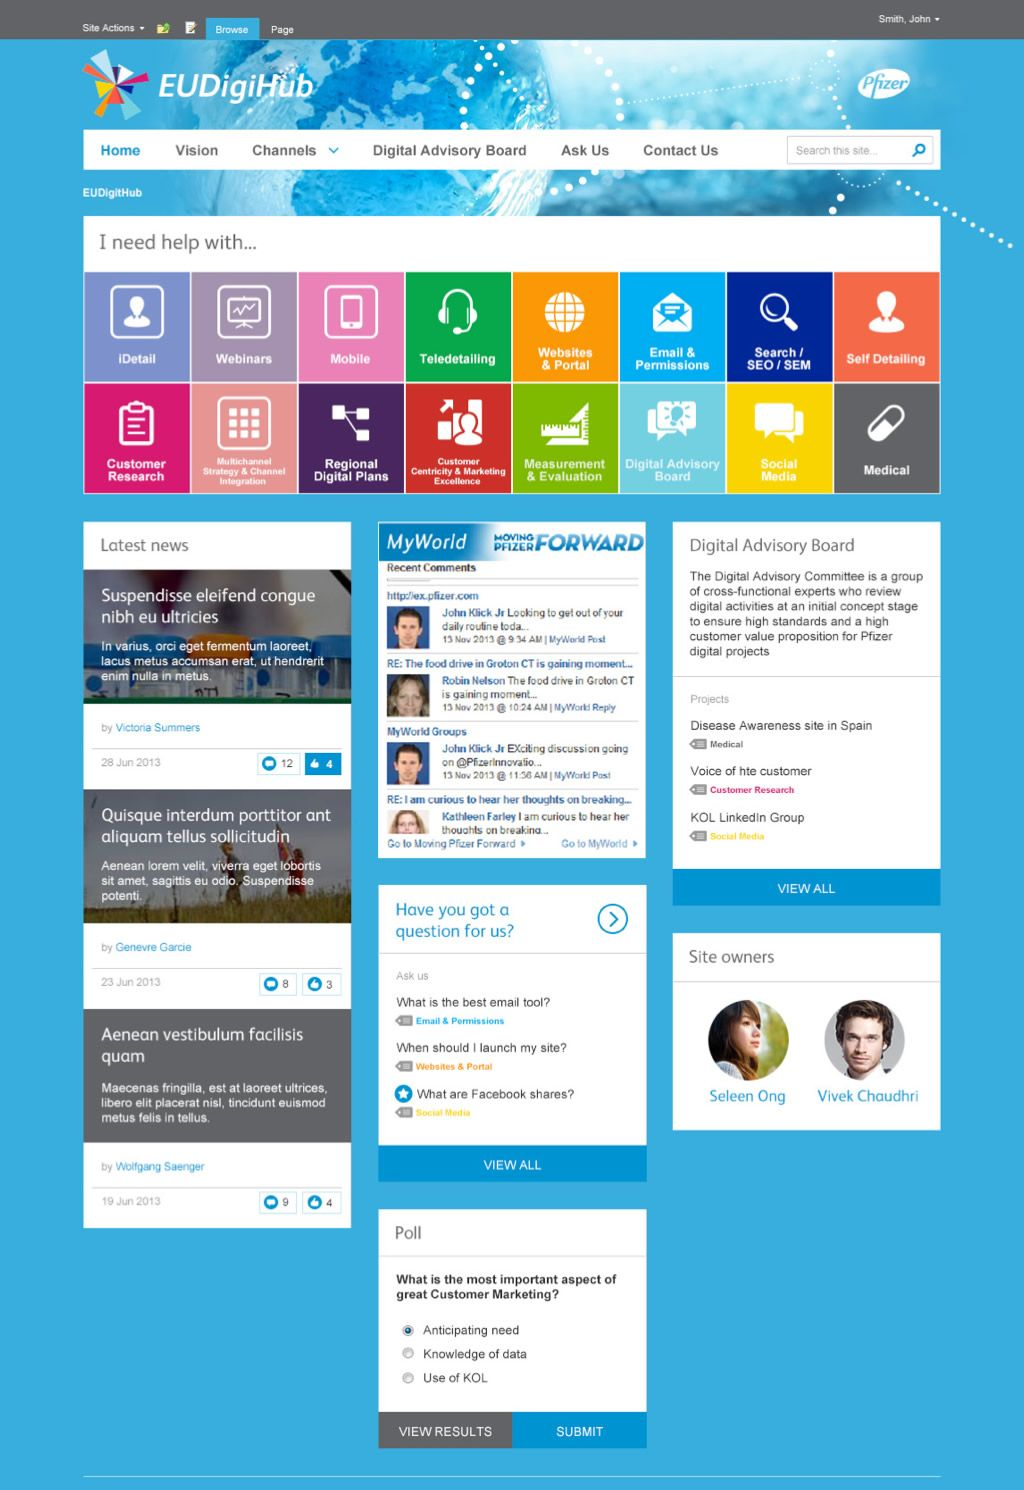 Pfizer draft home page sharepoints - Web application home page design ...